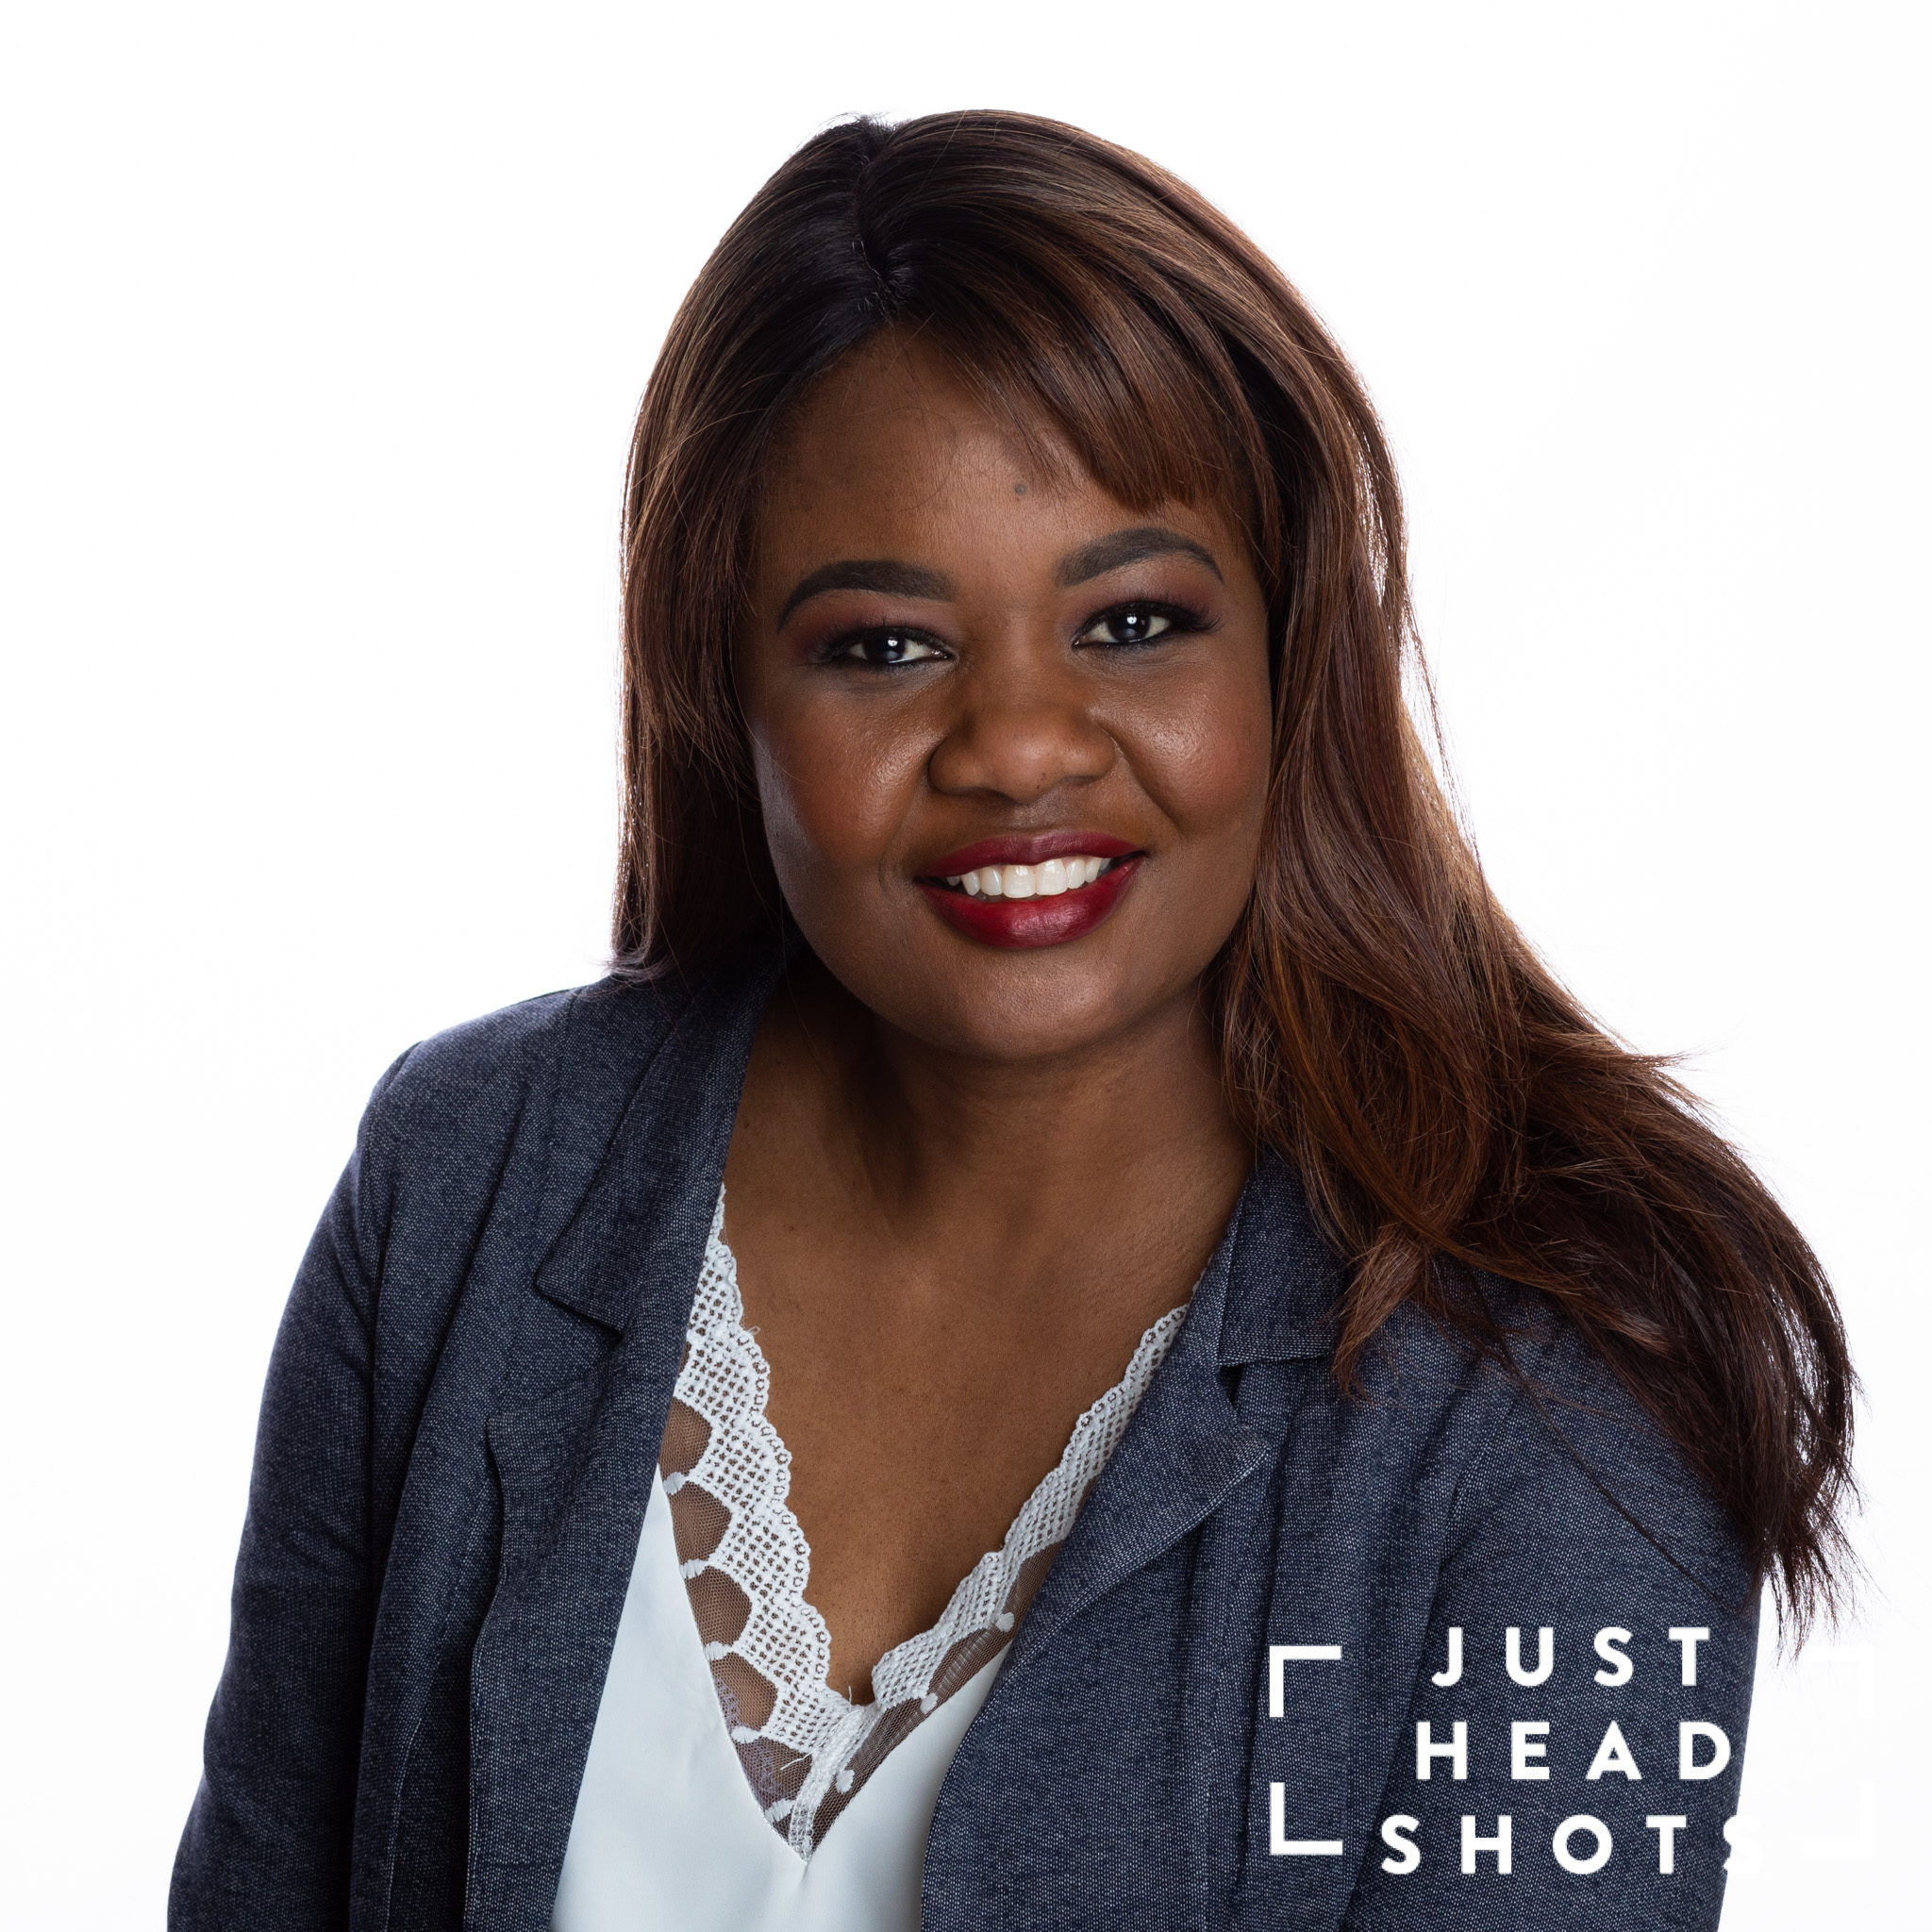 Professional headshot of a black woman wearing a white blouse and grey jacket photographed with Profoto studio flash on white background with shoulders angled to the left of the photo.